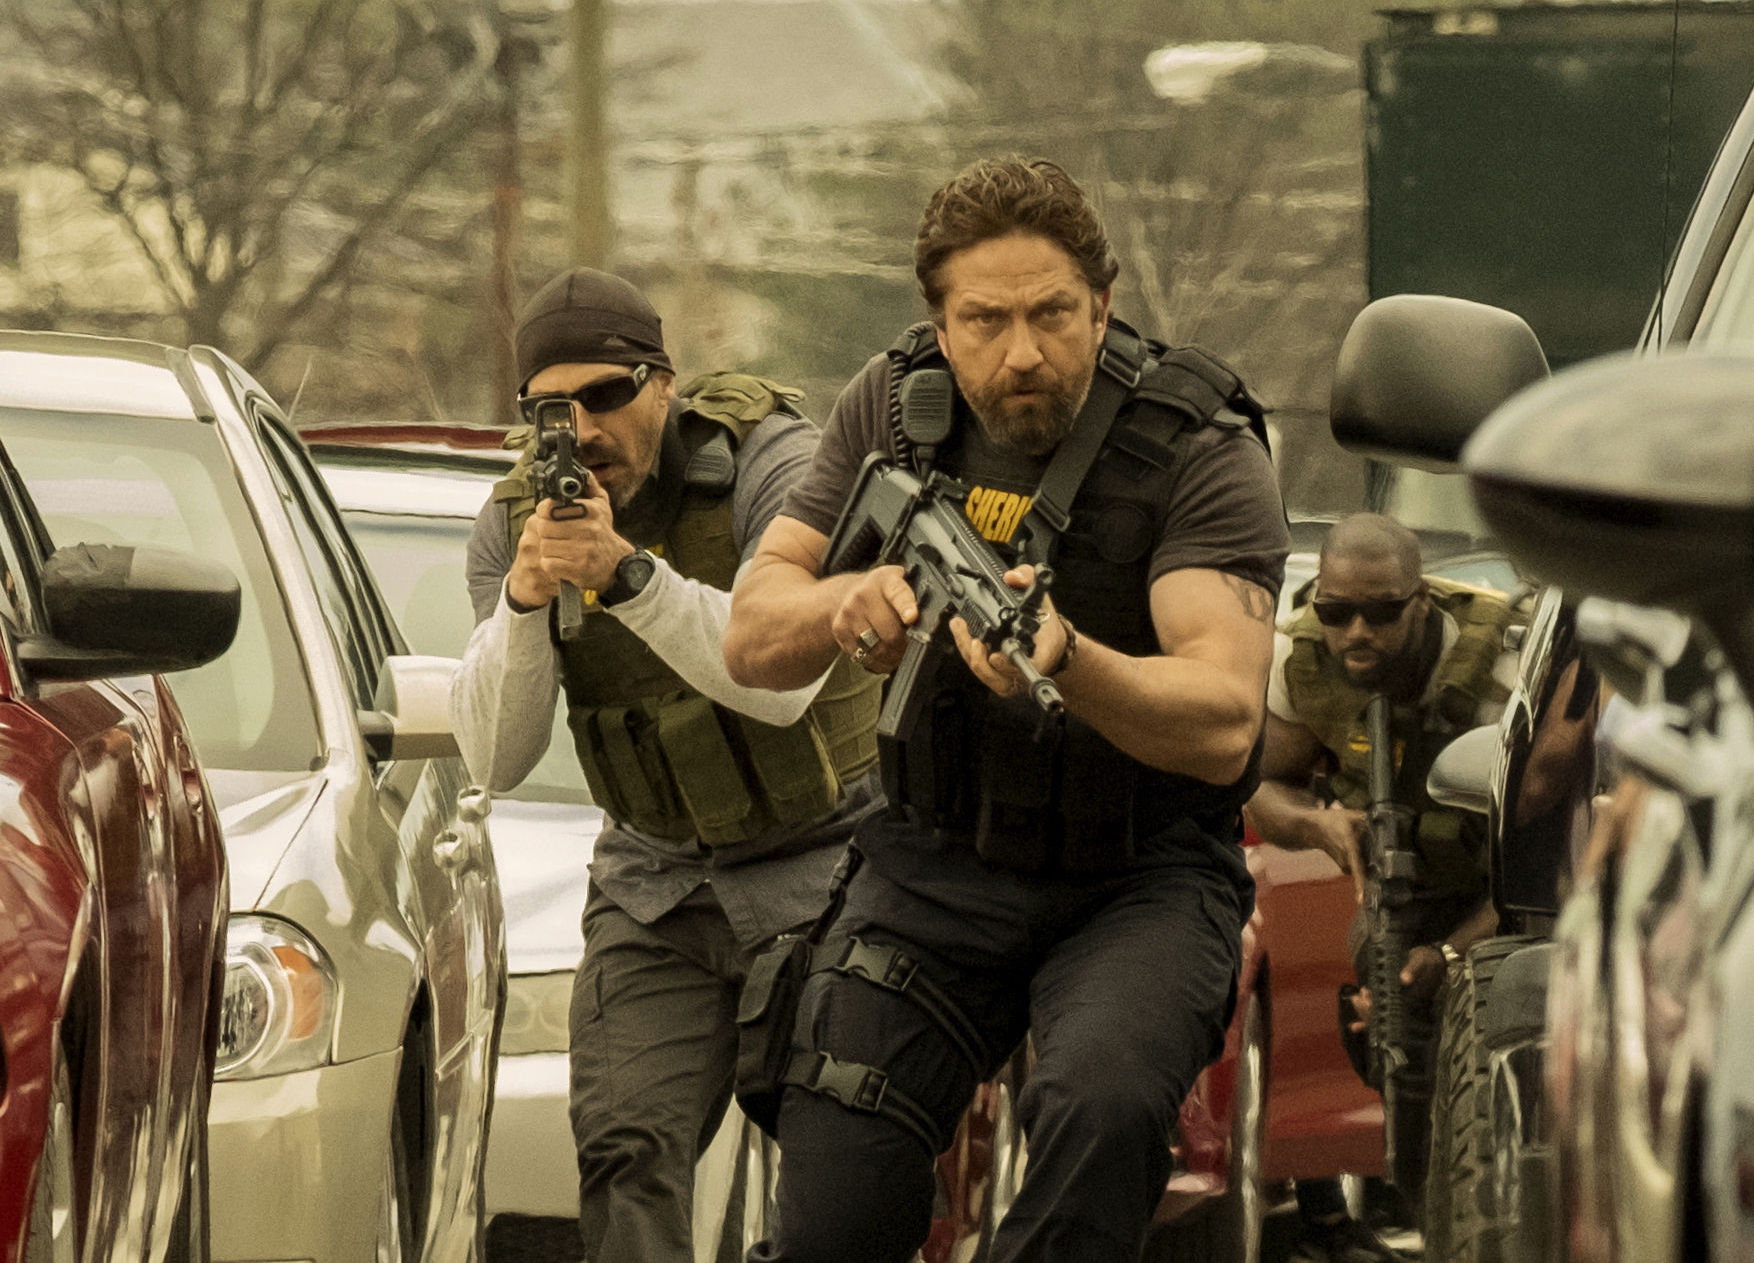 Jay Dobyns as Wolfgang and Gerard Butler as Detective Nick O'Brien